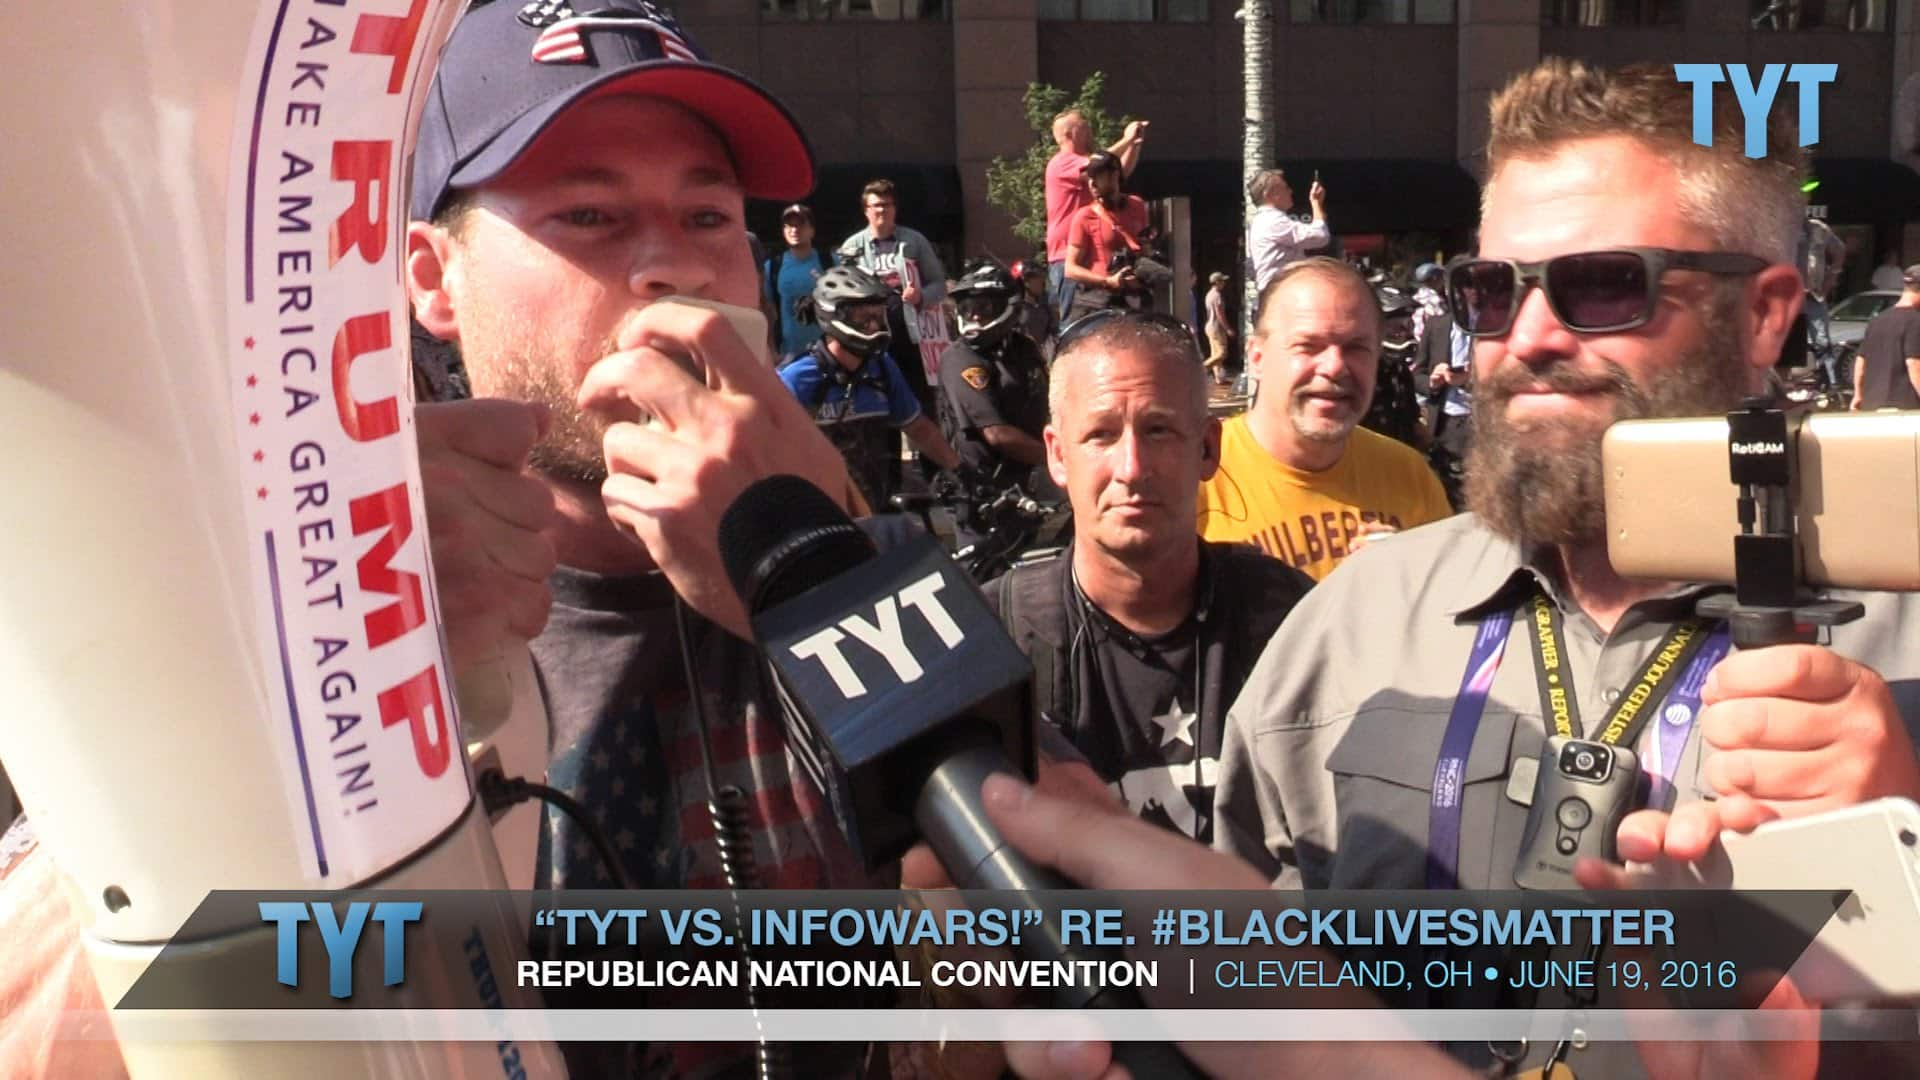 TYT vs. InfoWars re. #BlackLivesMatter At RNC Convention 21